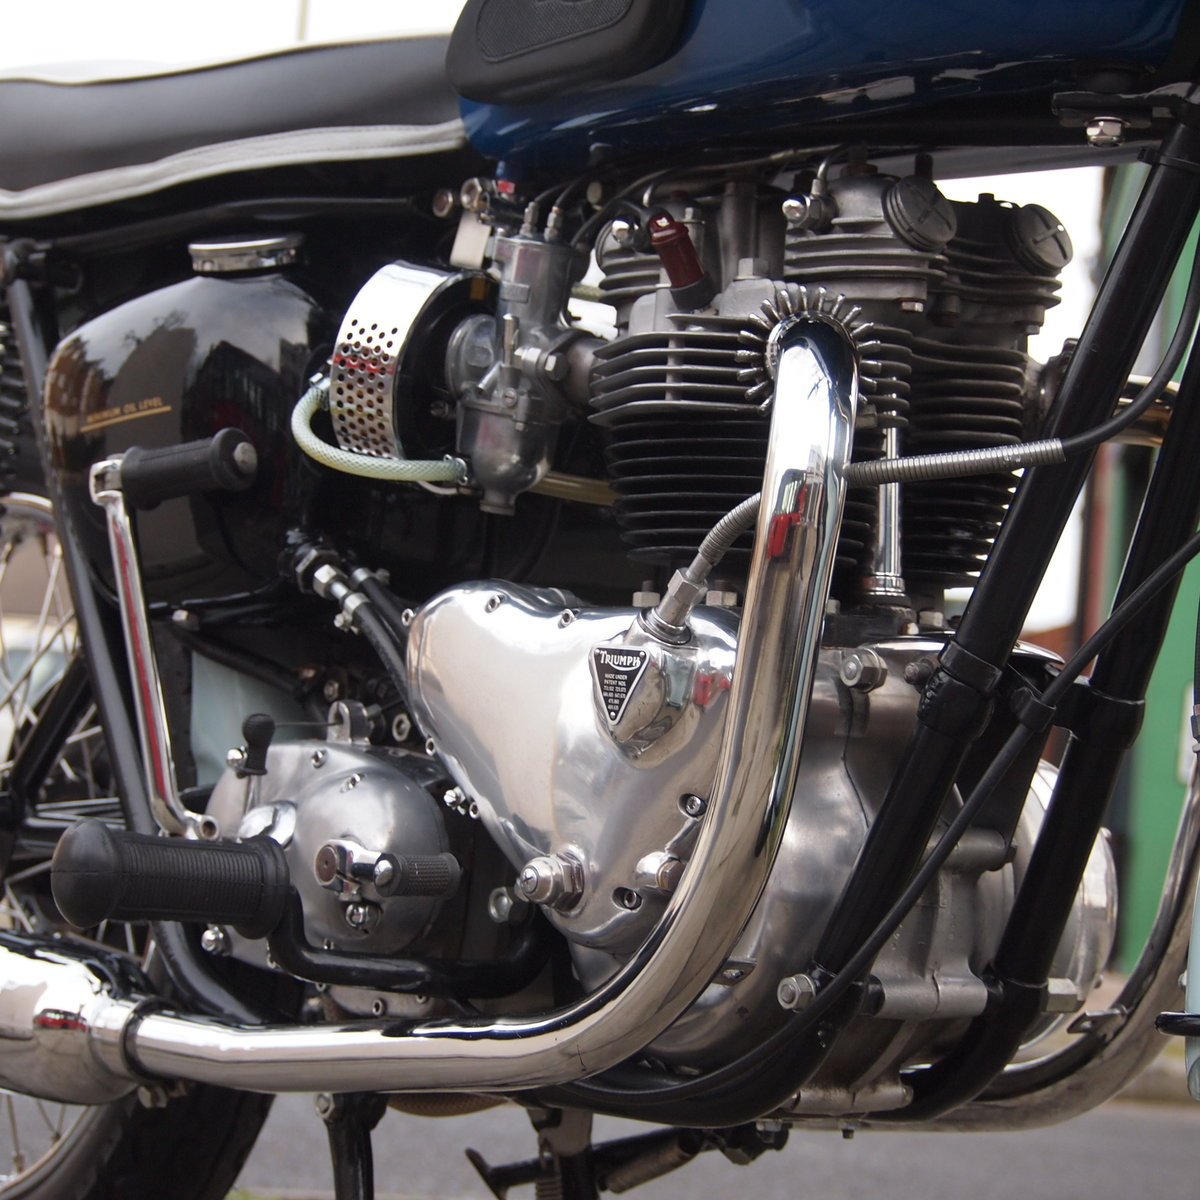 1960 T120 650cc Pre Unit, Duplex Frame, SOLD TO TONY. SOLD (picture 2 of 6)